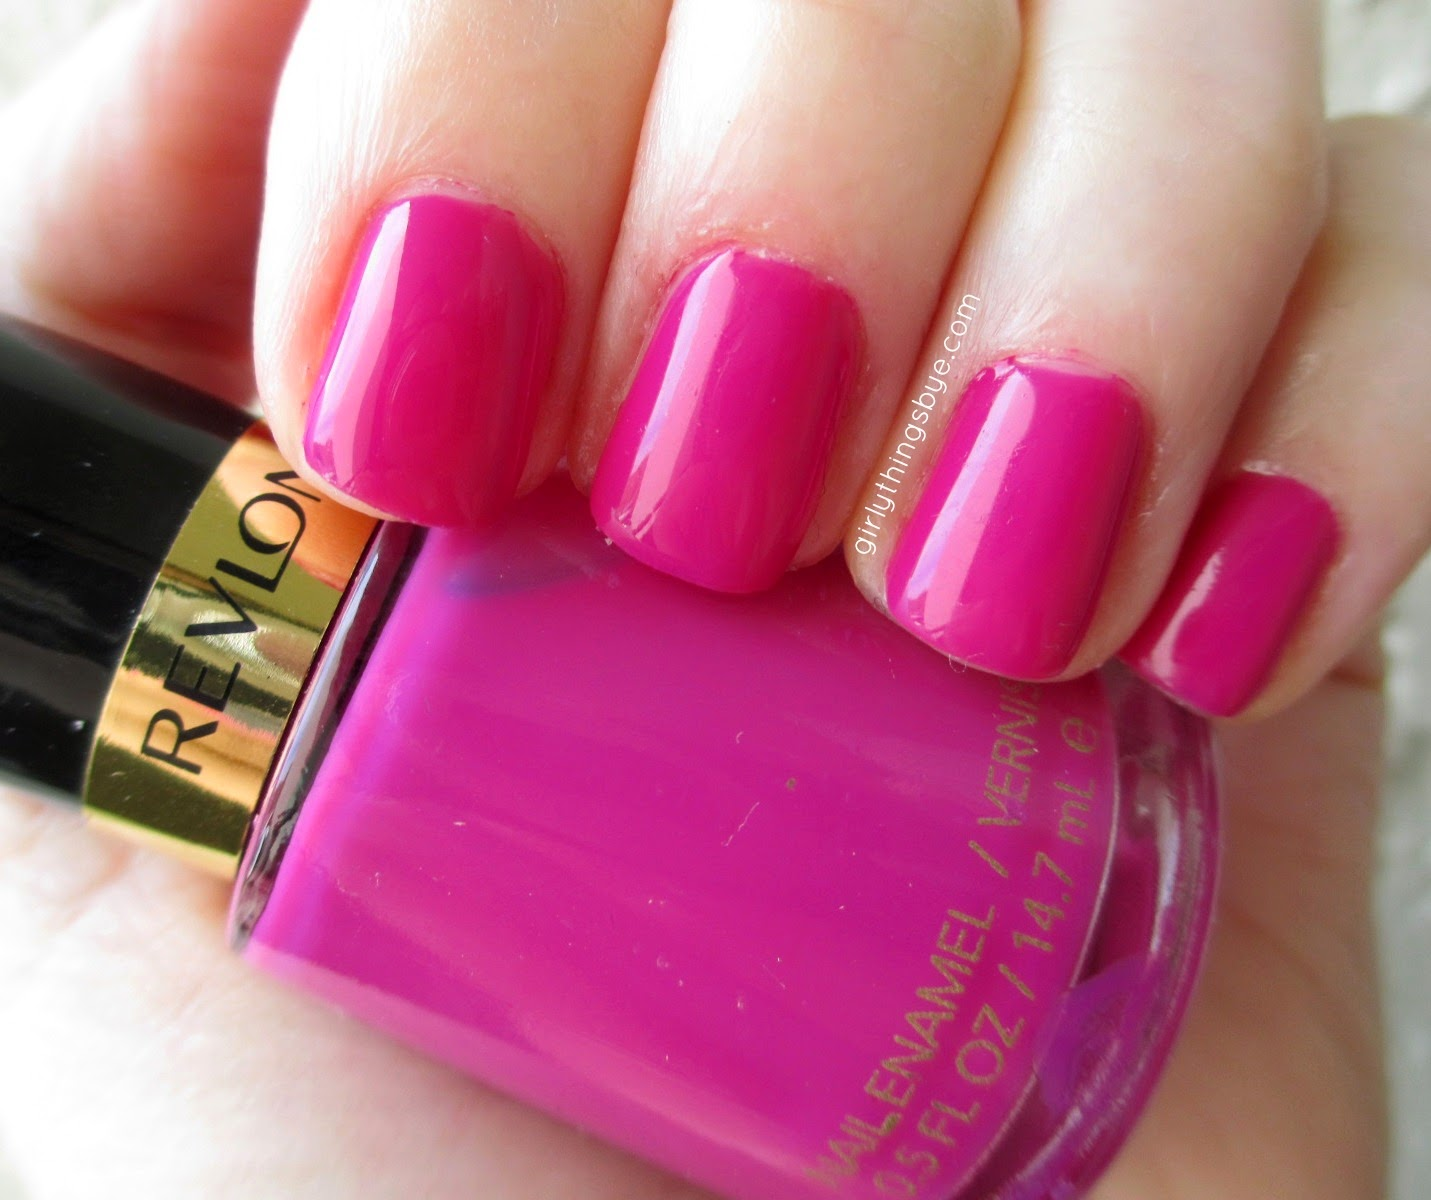 Revlon Plum Seduction nail enamel, radiant orchid, girlythingsby_e